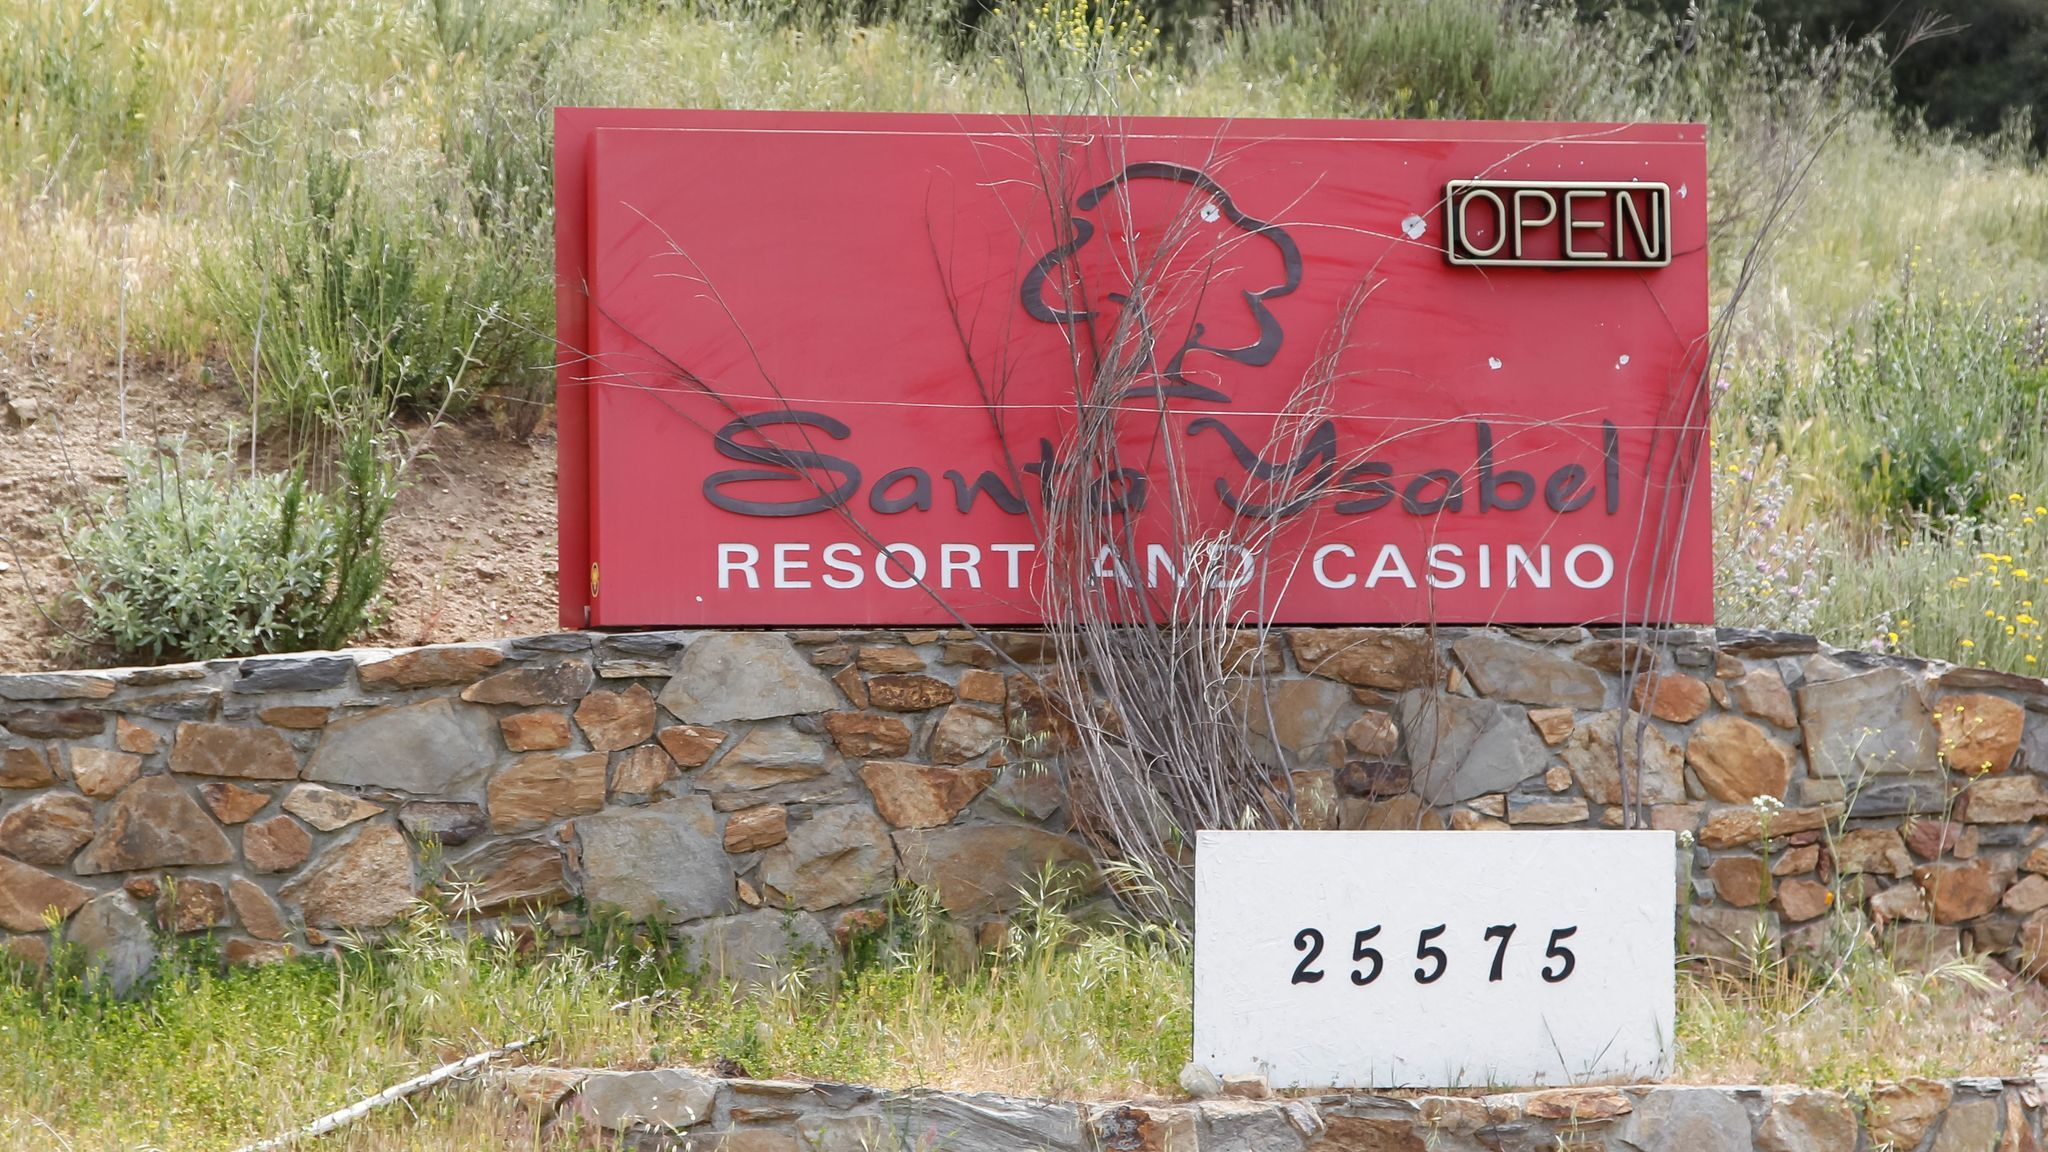 This is the entrance to the failed Santa Ysabel Casino in Santa Ysabel.